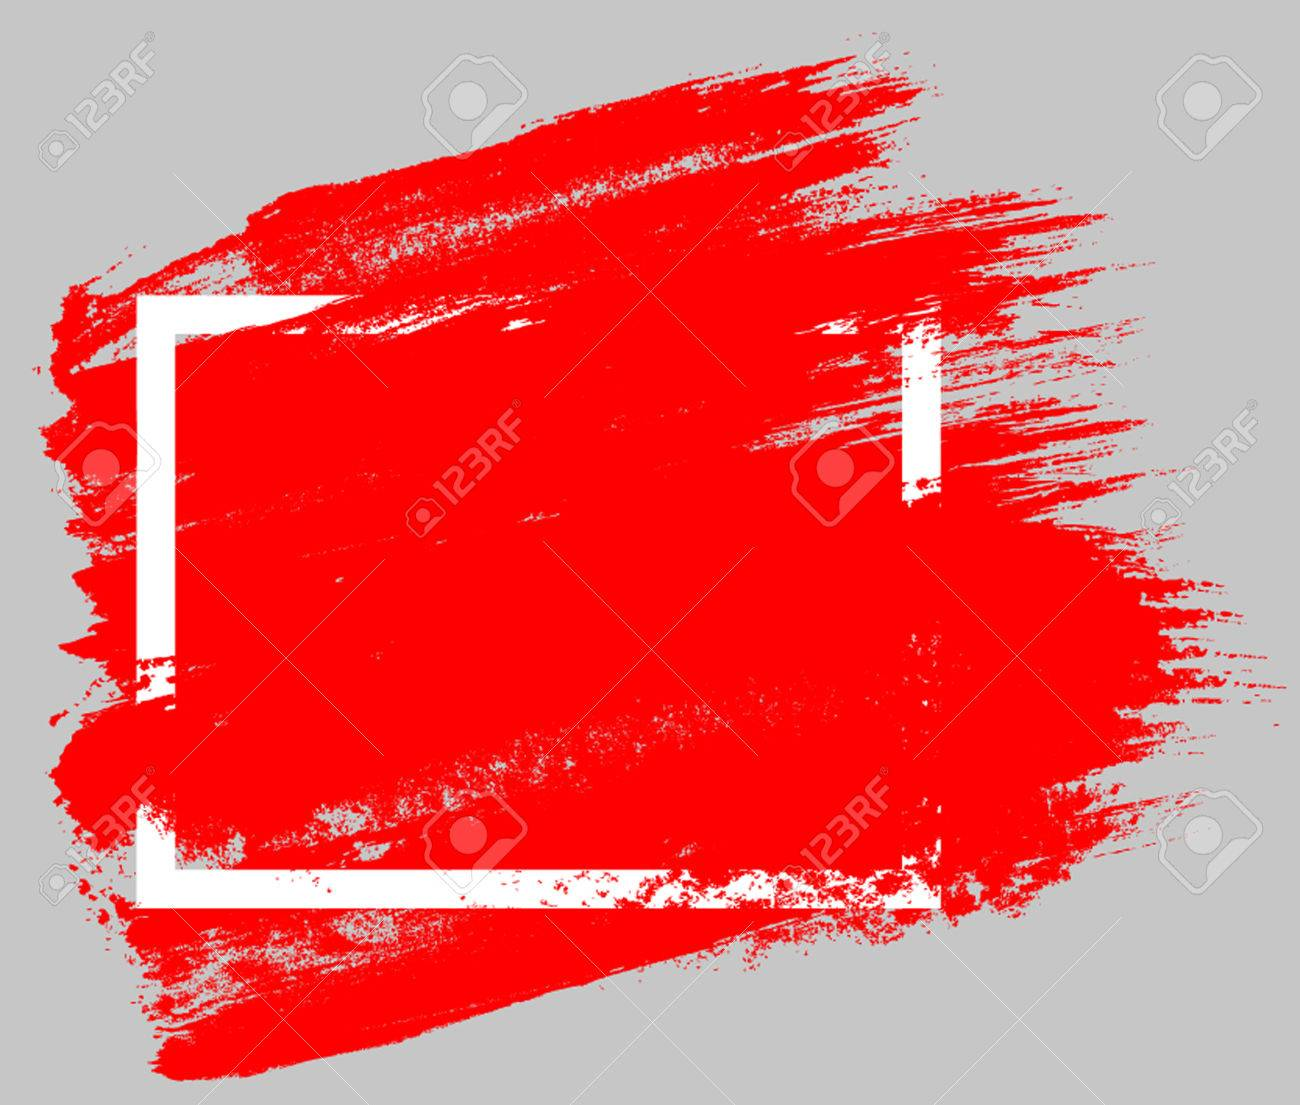 red brush strokes with rough edges abstract background dry